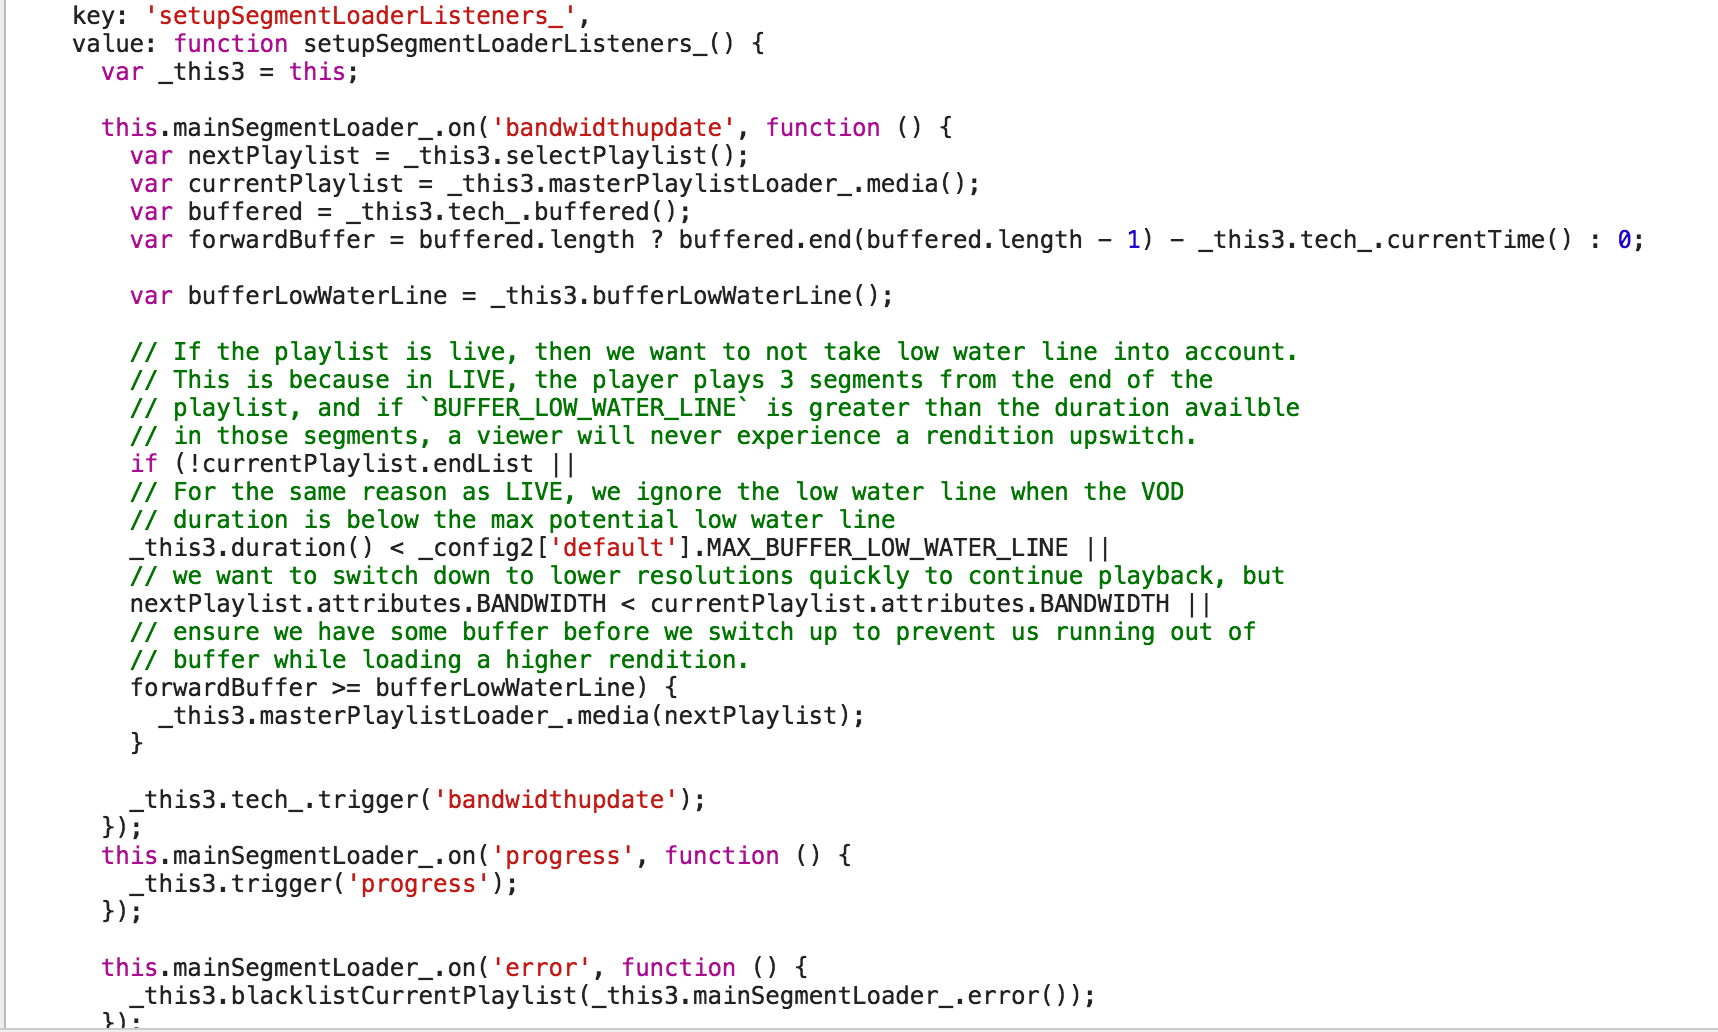 Cannot read property 'BANDWIDTH' of undefined · Issue #1205